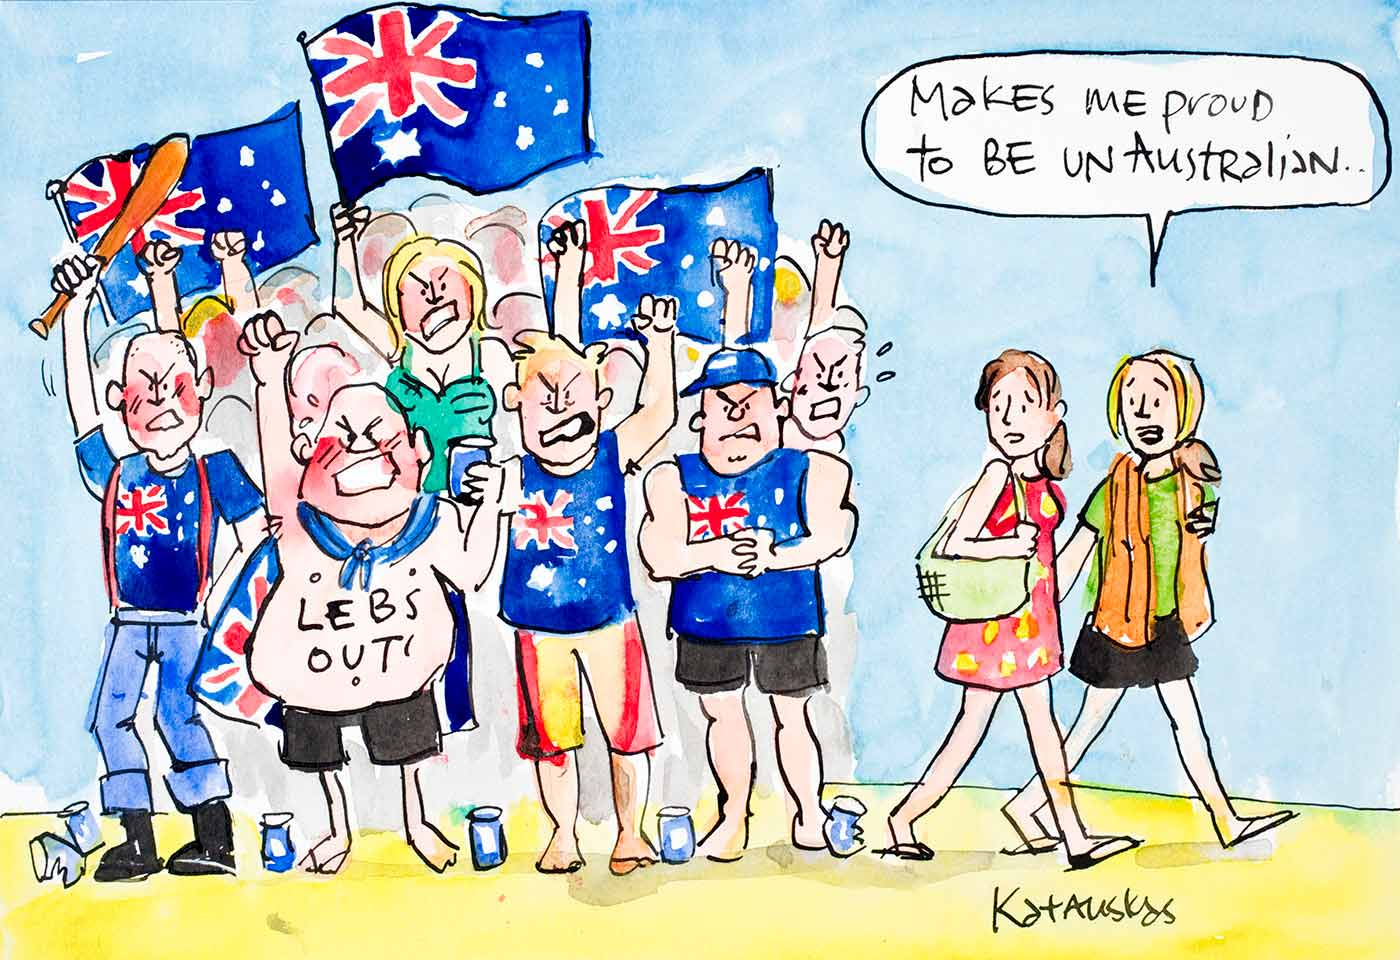 Cartoon of a group of angry looking people holding up Australian flags and baseball bats, wearing Australian flag t-shirts and drinking beer, with two girls walking past commenting that this behaviour makes them proud to be unAustralian - click to view larger image